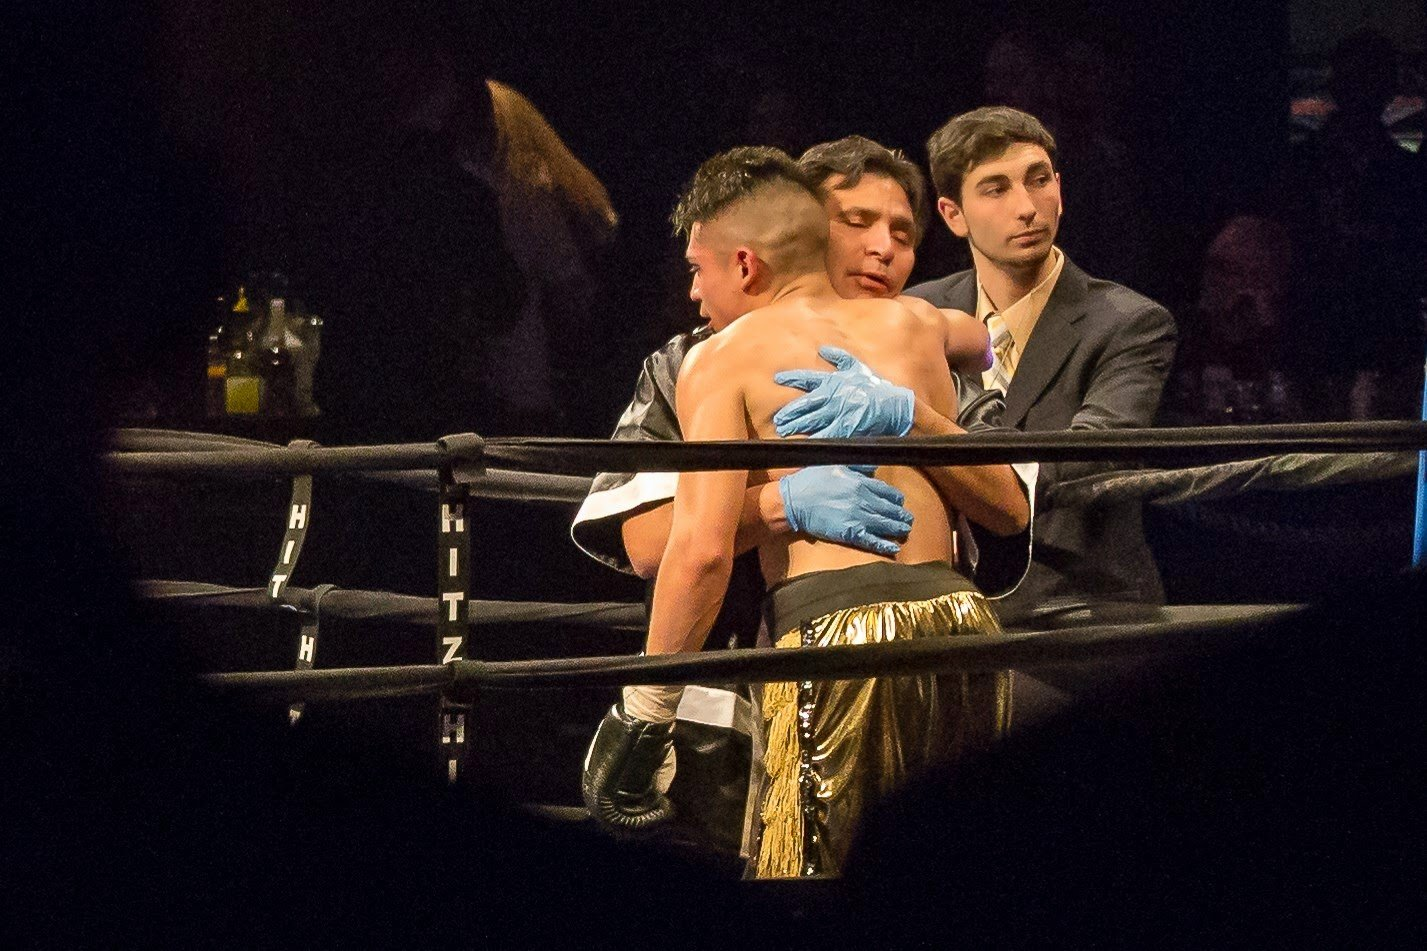 Father, Guillermo Coix, hugs his son, Will Coix, after winning a fight at a Hitz Boxing event.